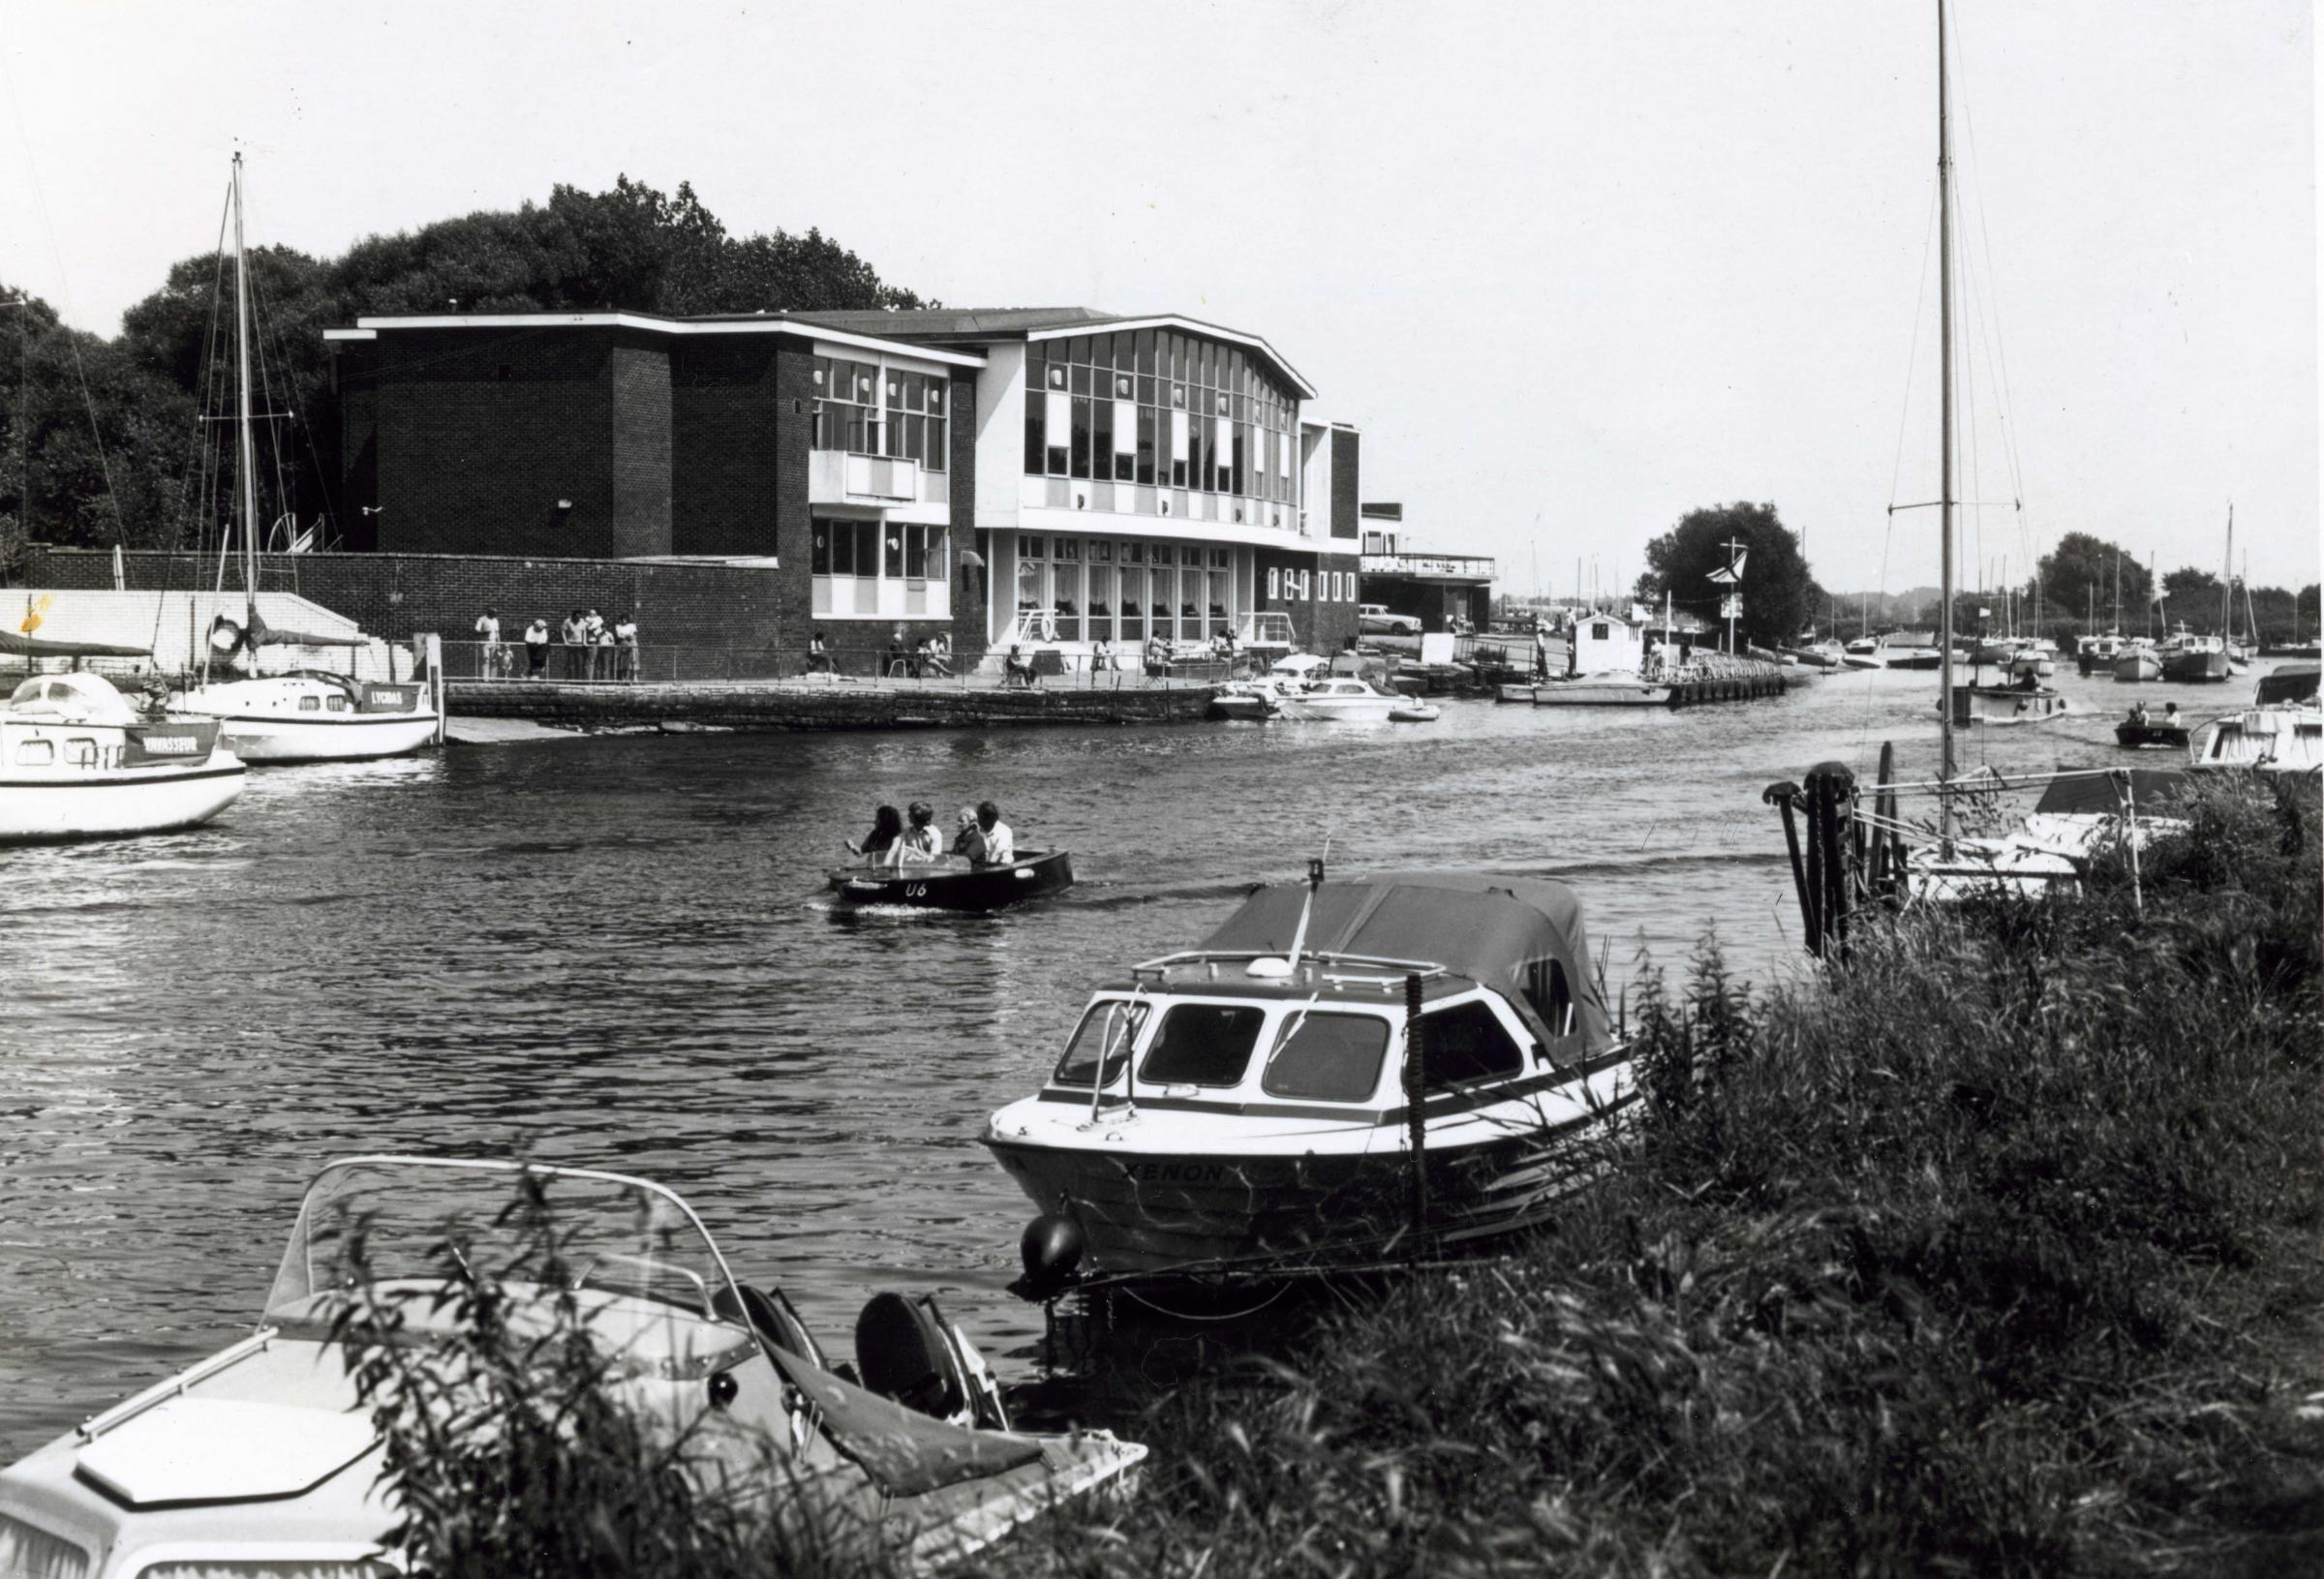 The main club house of Pontins Holiday Camp overlooking the River Stour in Christchurch, 1987